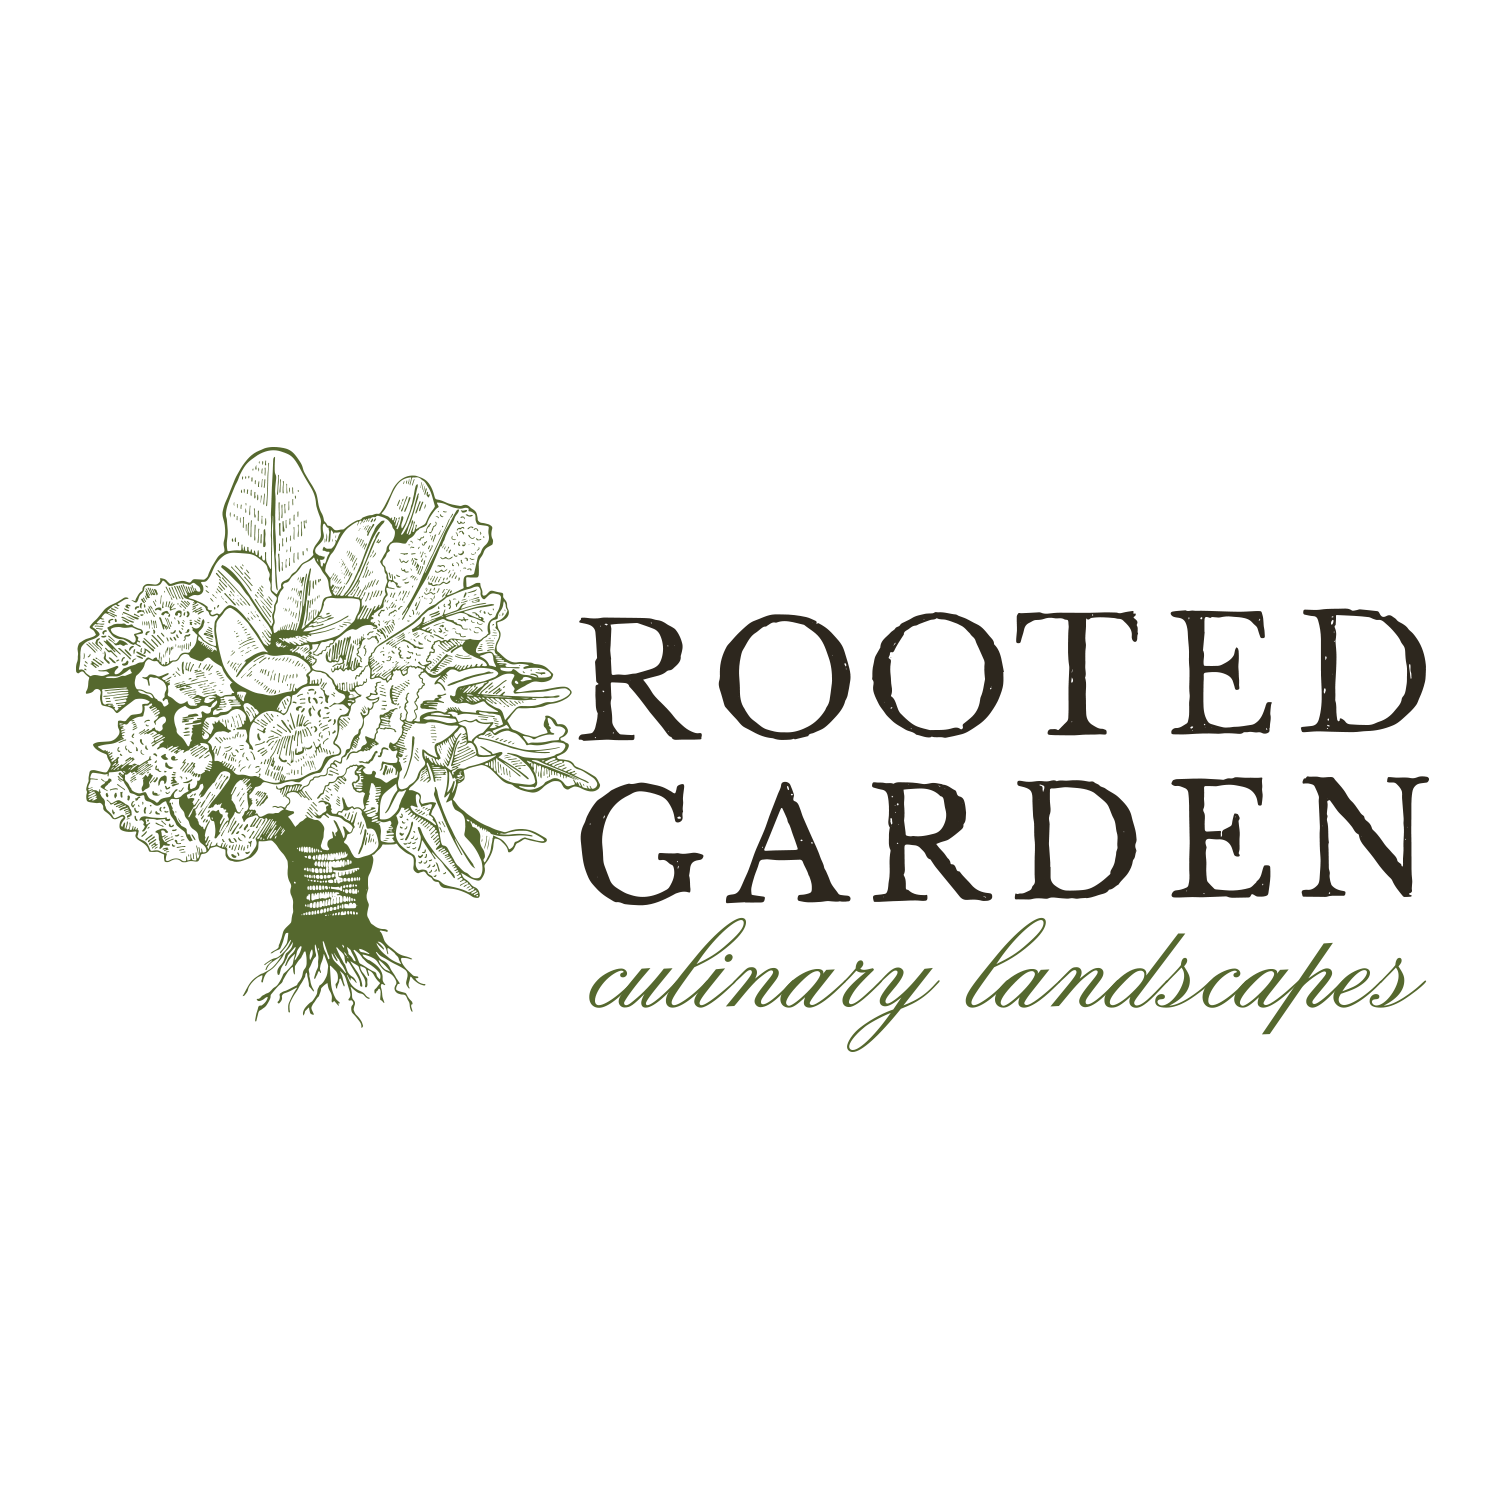 Rooted Garden